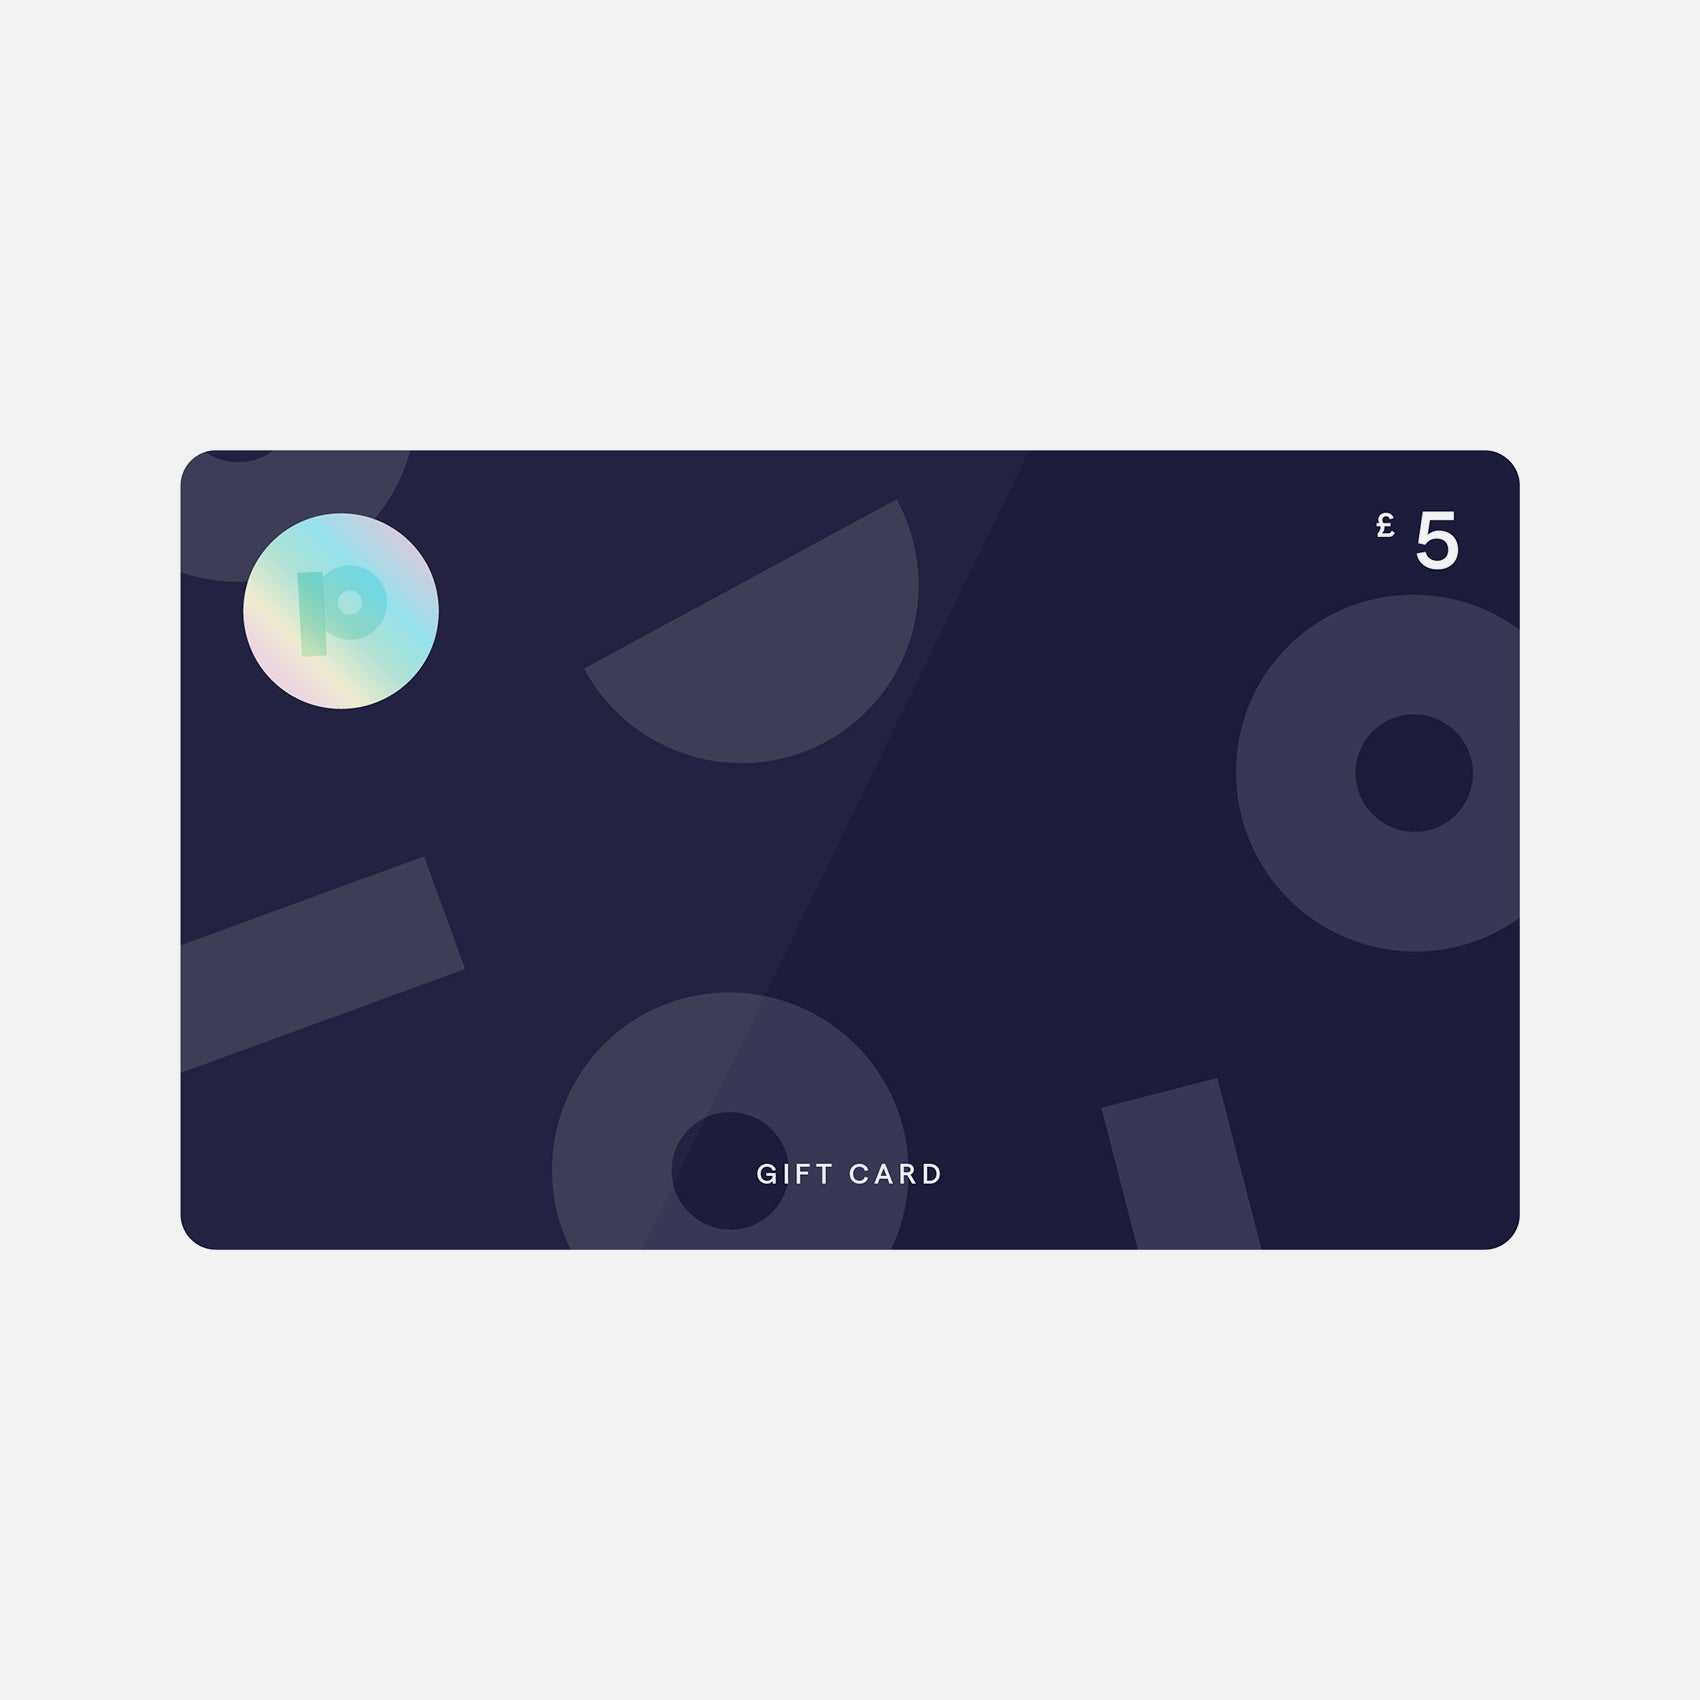 Gift card from Pea £5